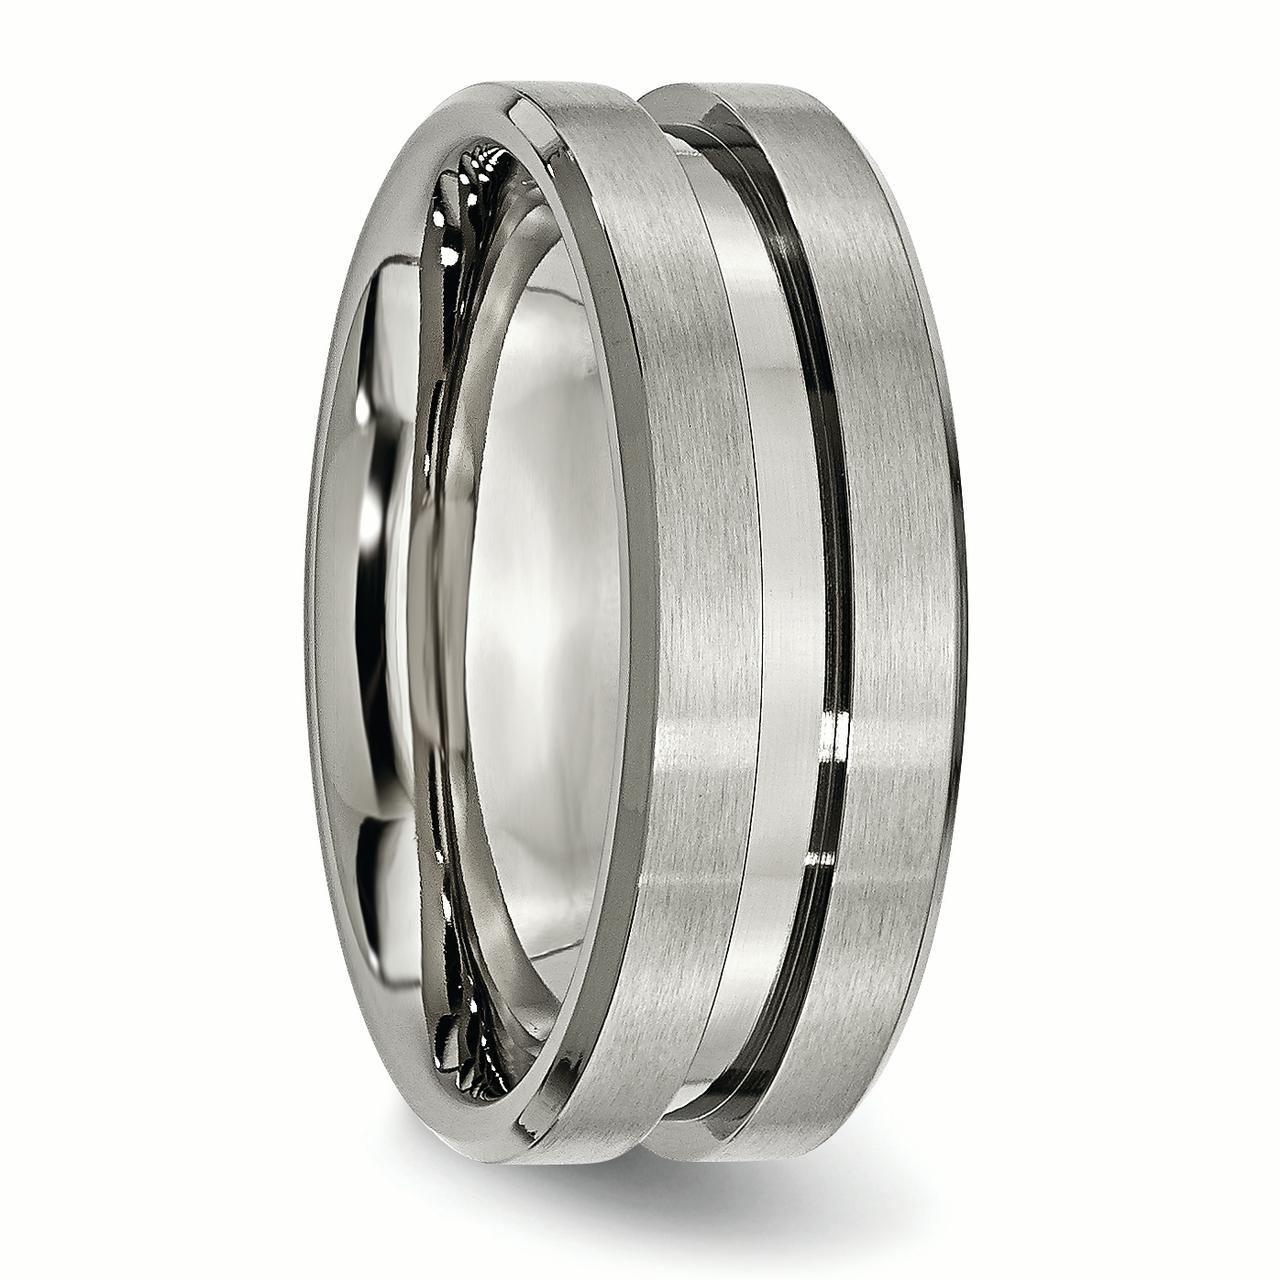 Titanium Grooved 8mm Brushed Wedding Ring Band Size 8.50 Fashion Jewelry Gifts For Women For Her - image 4 of 6